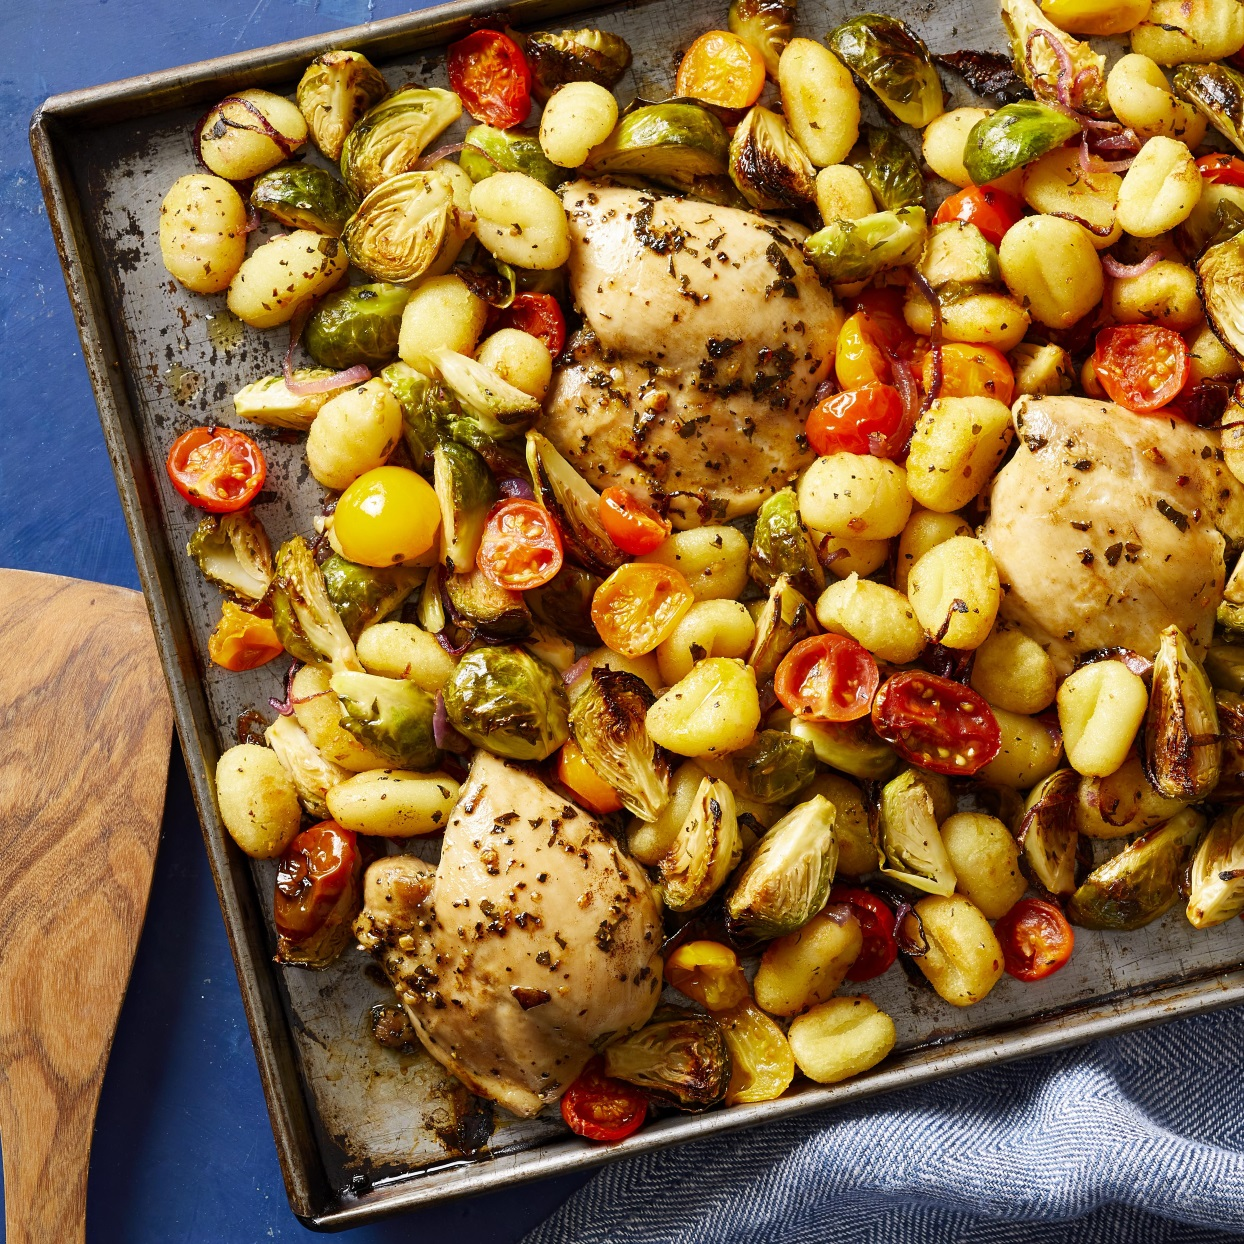 In this healthy dinner recipe, chicken thighs, Brussels sprouts, cherry tomatoes and packaged gnocchi are all roasted on the same sheet pan for a complete meal that couldn't be easier to make. And though it's simple, this dish gets tons of flavor from Mediterranean seasonings, including garlic, oregano and red-wine vinegar. It all adds up to a dish that's ready to go into heavy weeknight rotation in your house.